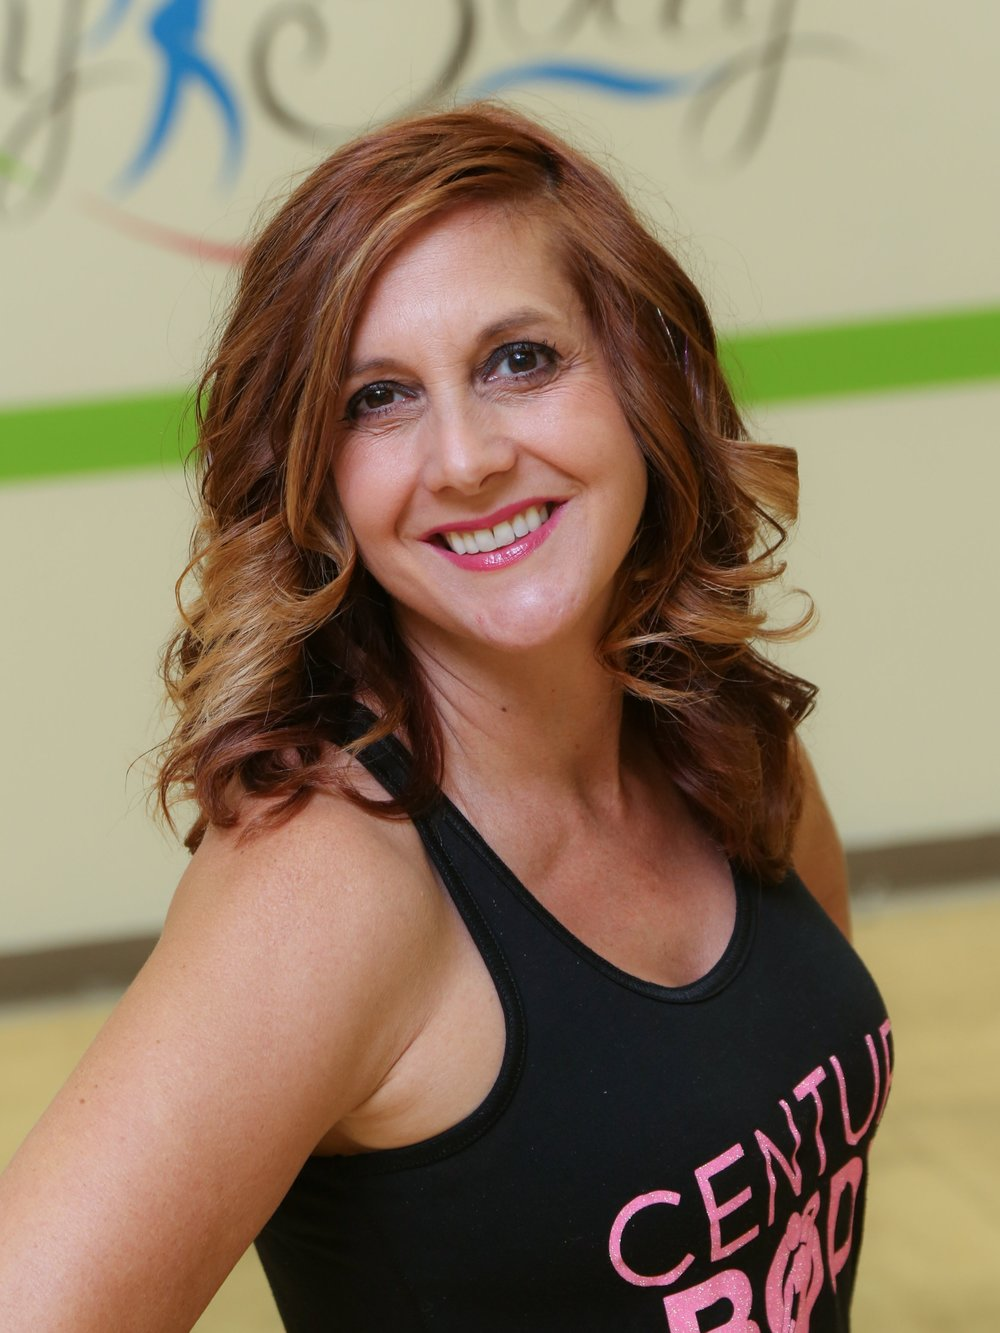 Melinda Moore   I love how we're one big family at Century Body. And you know what they say, the family that does Strong by Zumba® together, stays together! I love STRONG by Zumba® because it's challenging and there's an incredible sense of accomplishment you feel after each class. Come join me and the STRONG crew to find out! We'll get your heart pumping!